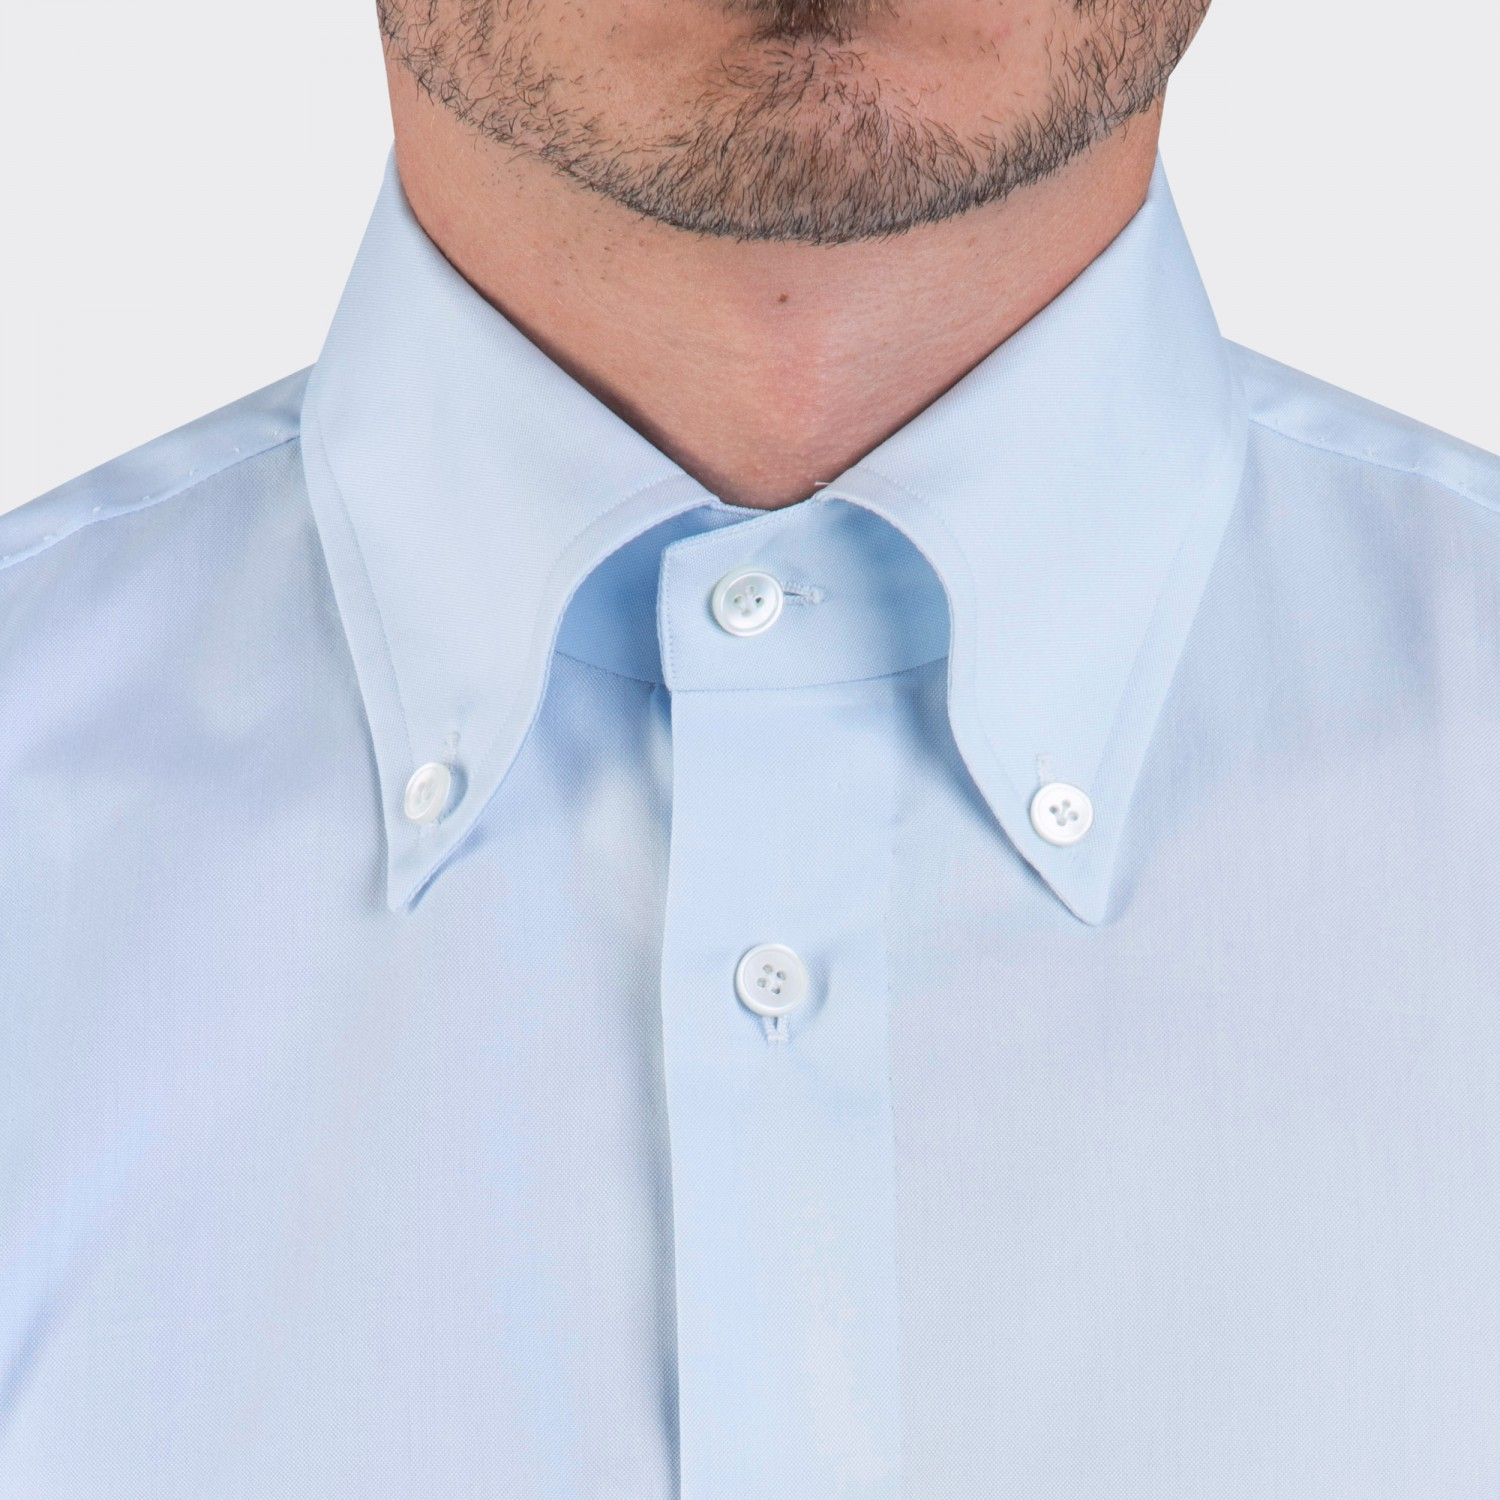 Free shipping and returns on Men's Button-Down Collar Dress Shirts at liveblog.ga